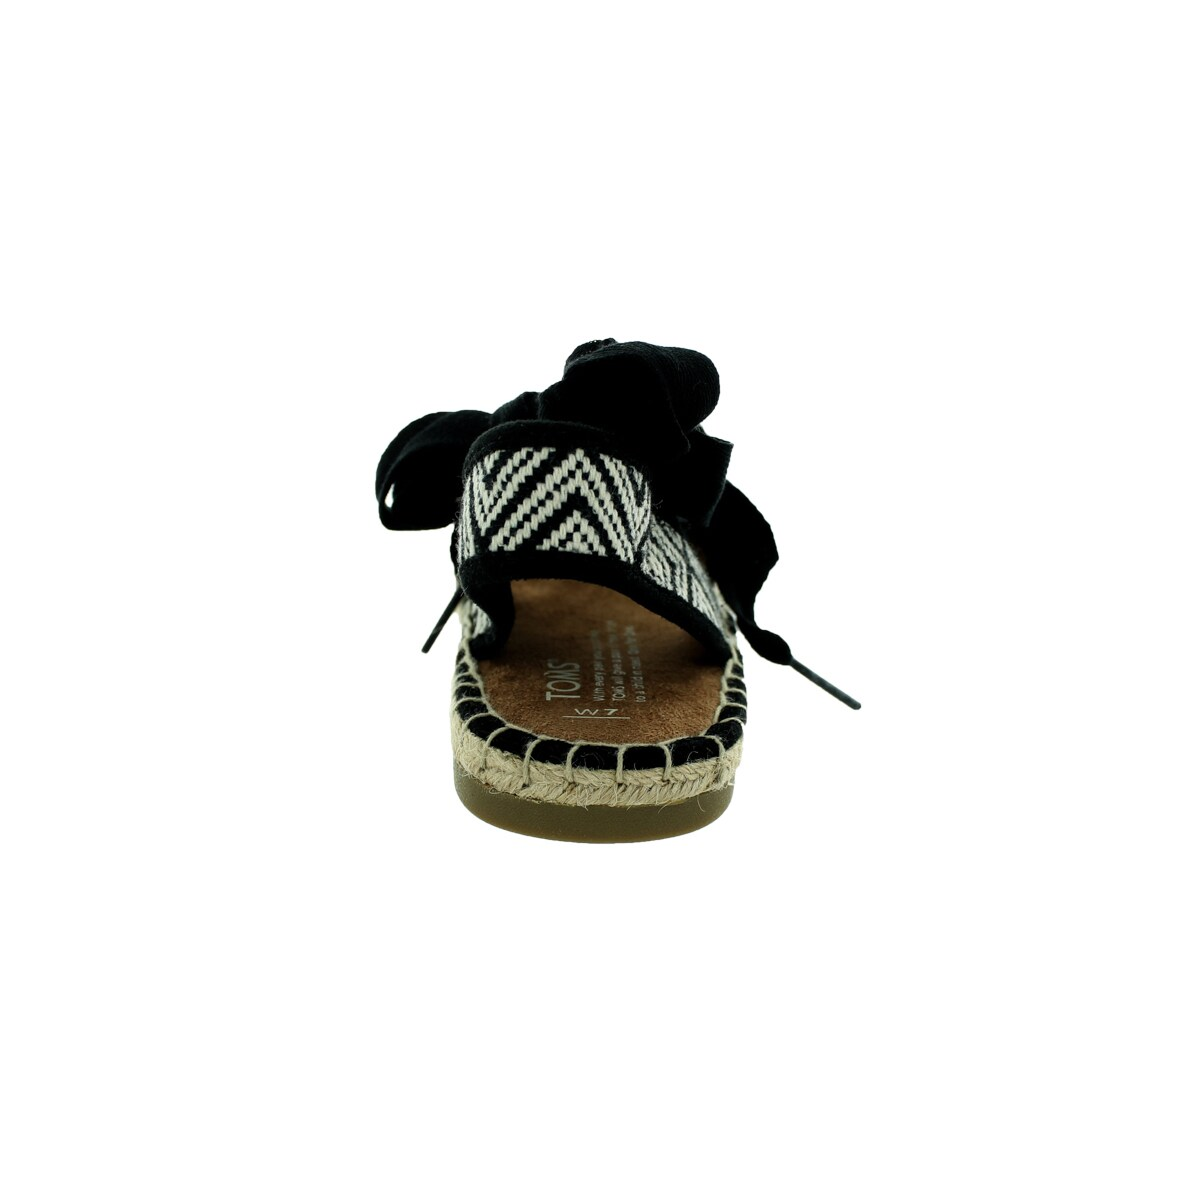 ed8f8a20d Shop Toms Women's Bella Espadrille Black Woven Sandal - Free Shipping Today  - Overstock - 12320330